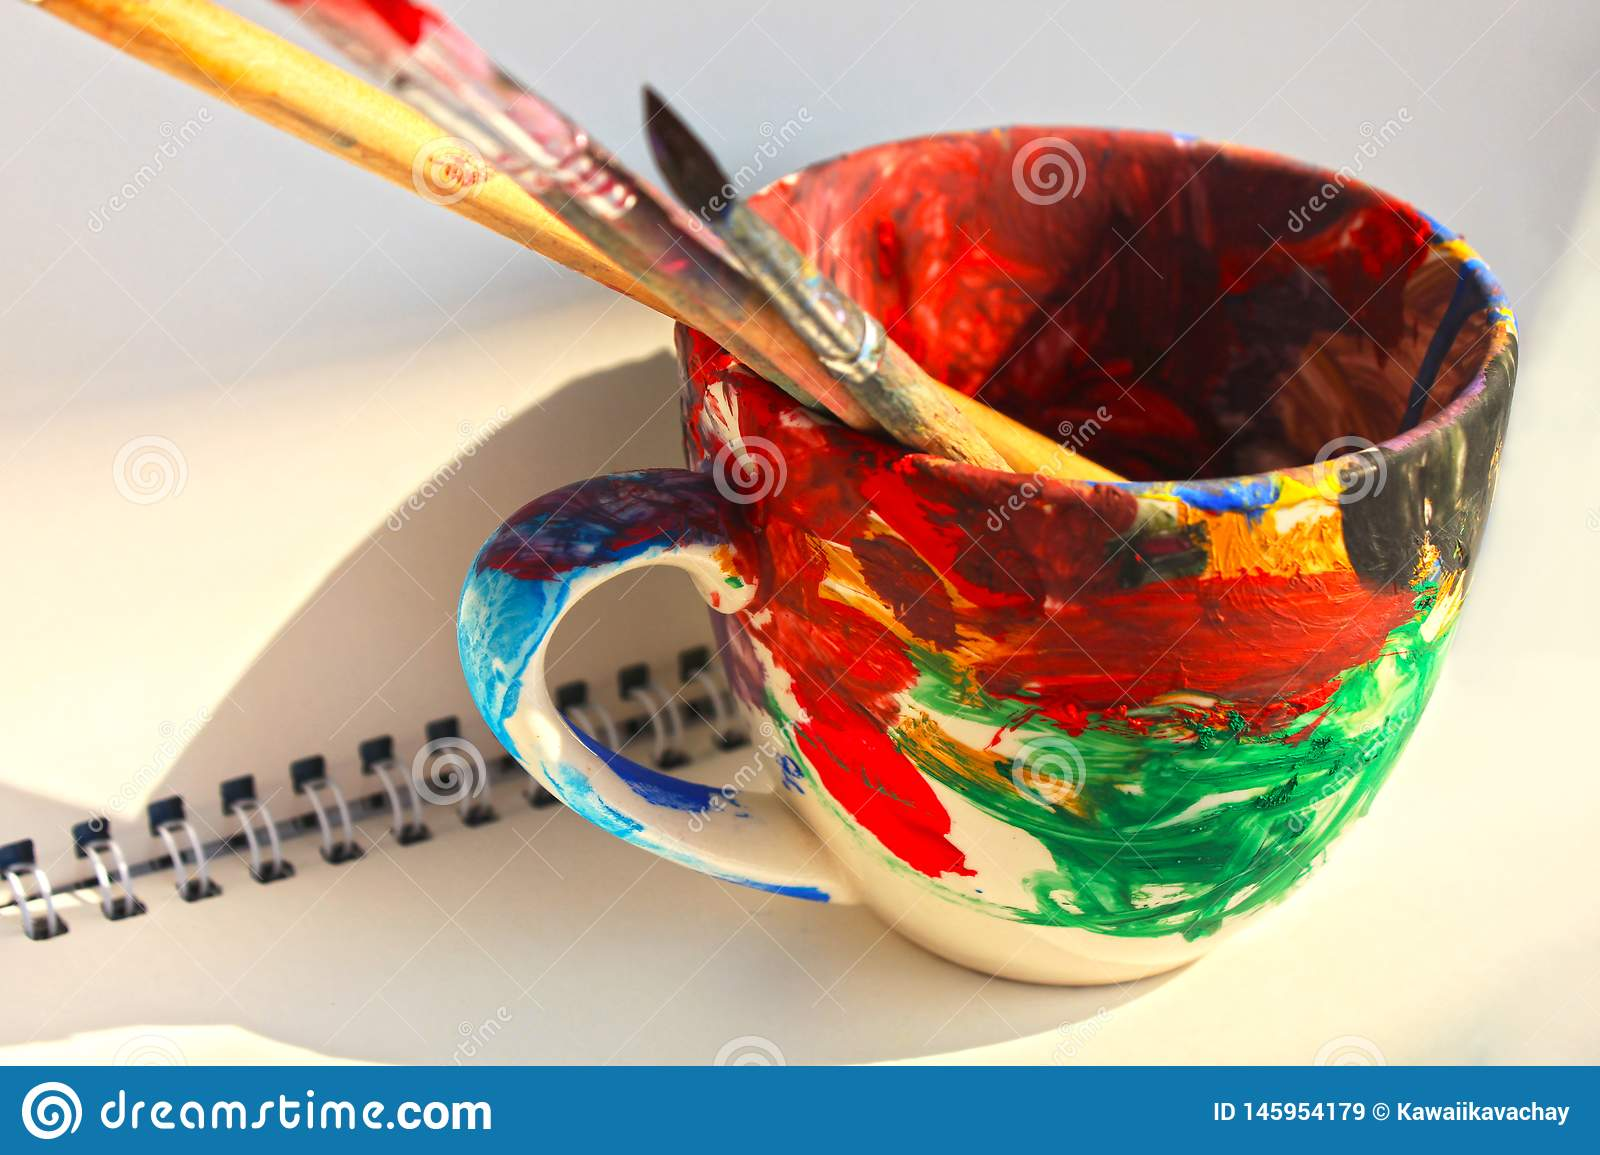 Art Paint Brushes In A Cup With Empty Space For Text Stock Image Image Of Creative Design 145954179